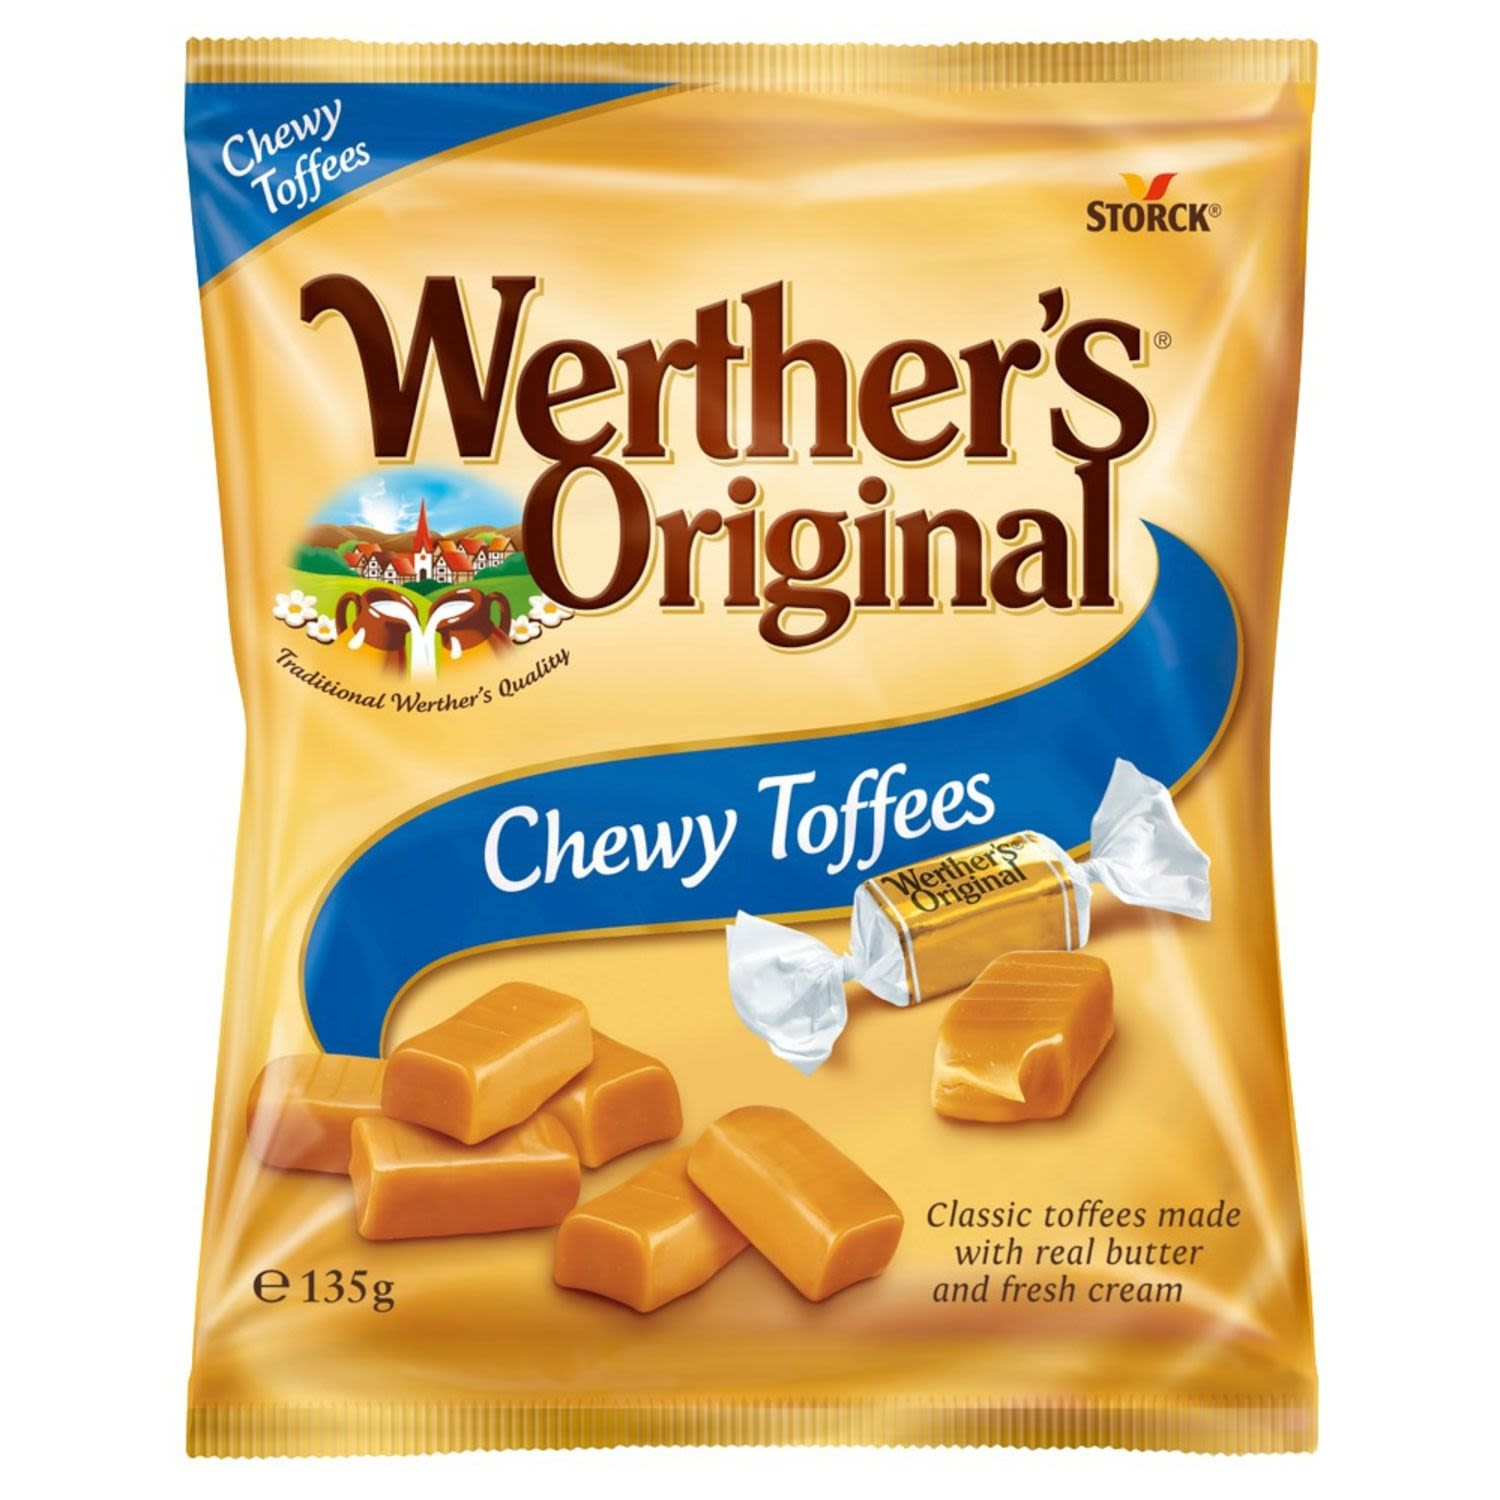 Werther's Original Chewy Toffees, 135 Gram